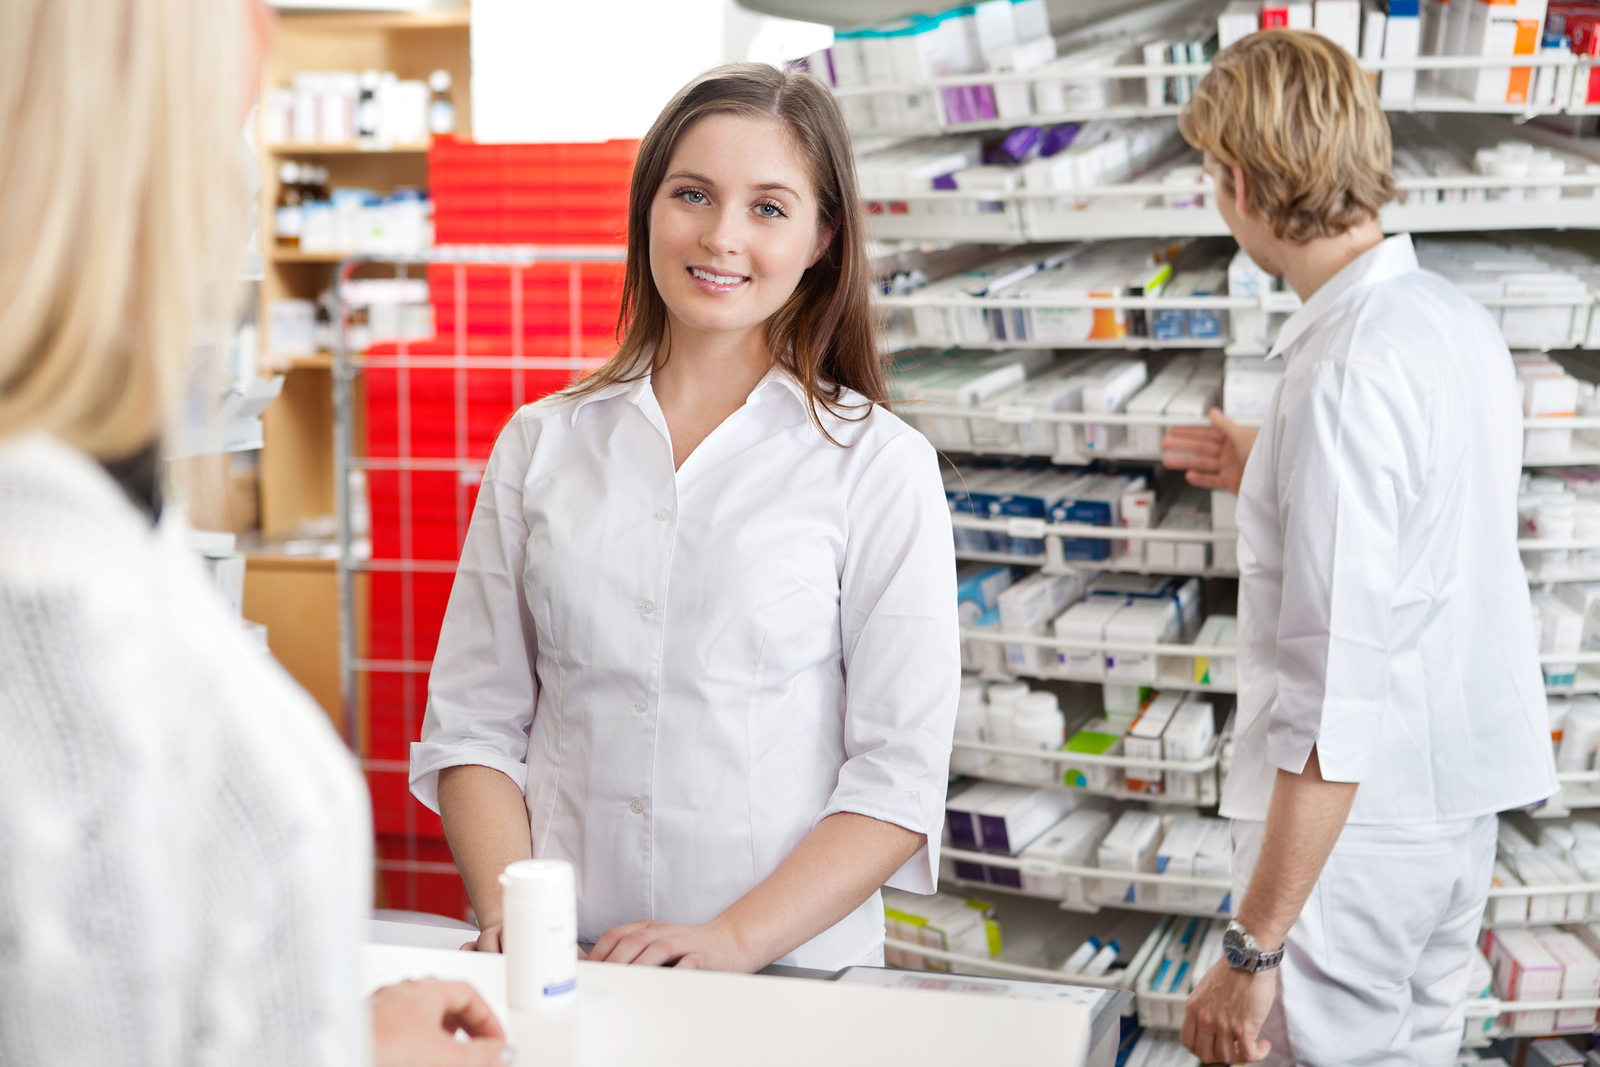 Pharmacy Technician easy majors in college that pay well